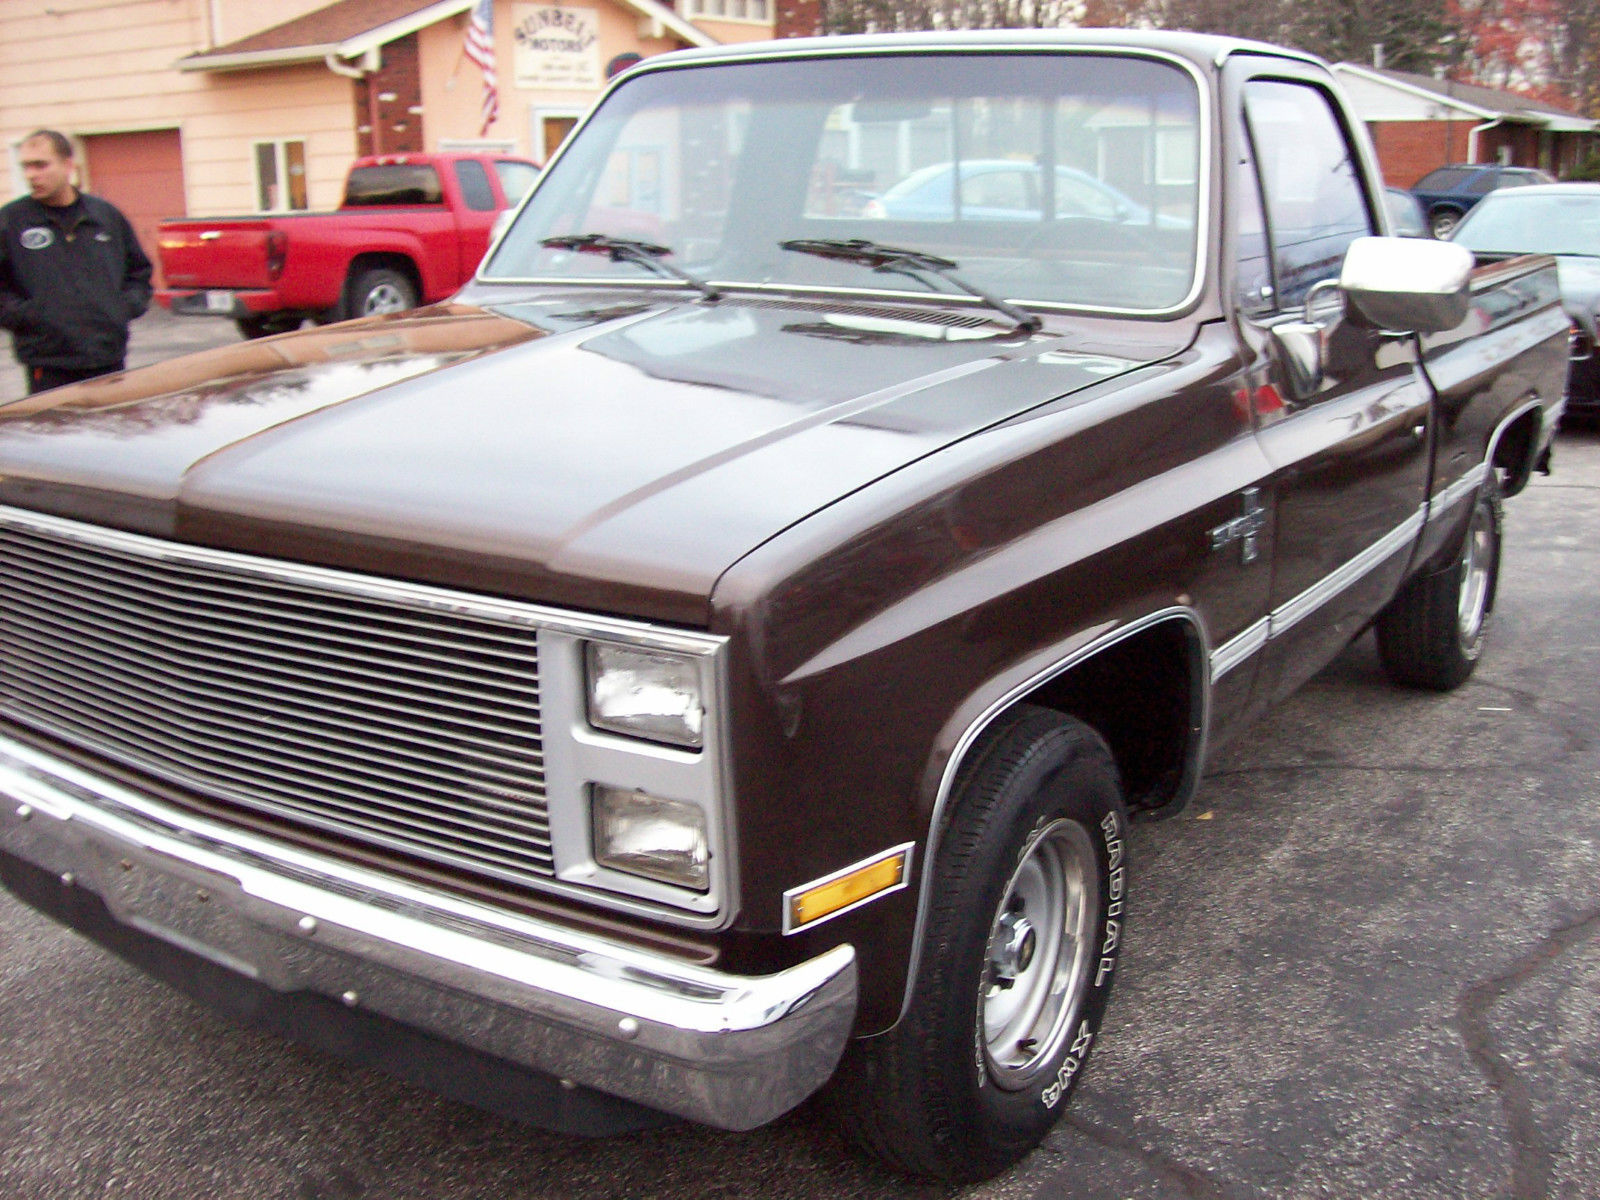 1985 chevrolet c10 silverado standard cab pickup 2 door 5 7l. Black Bedroom Furniture Sets. Home Design Ideas